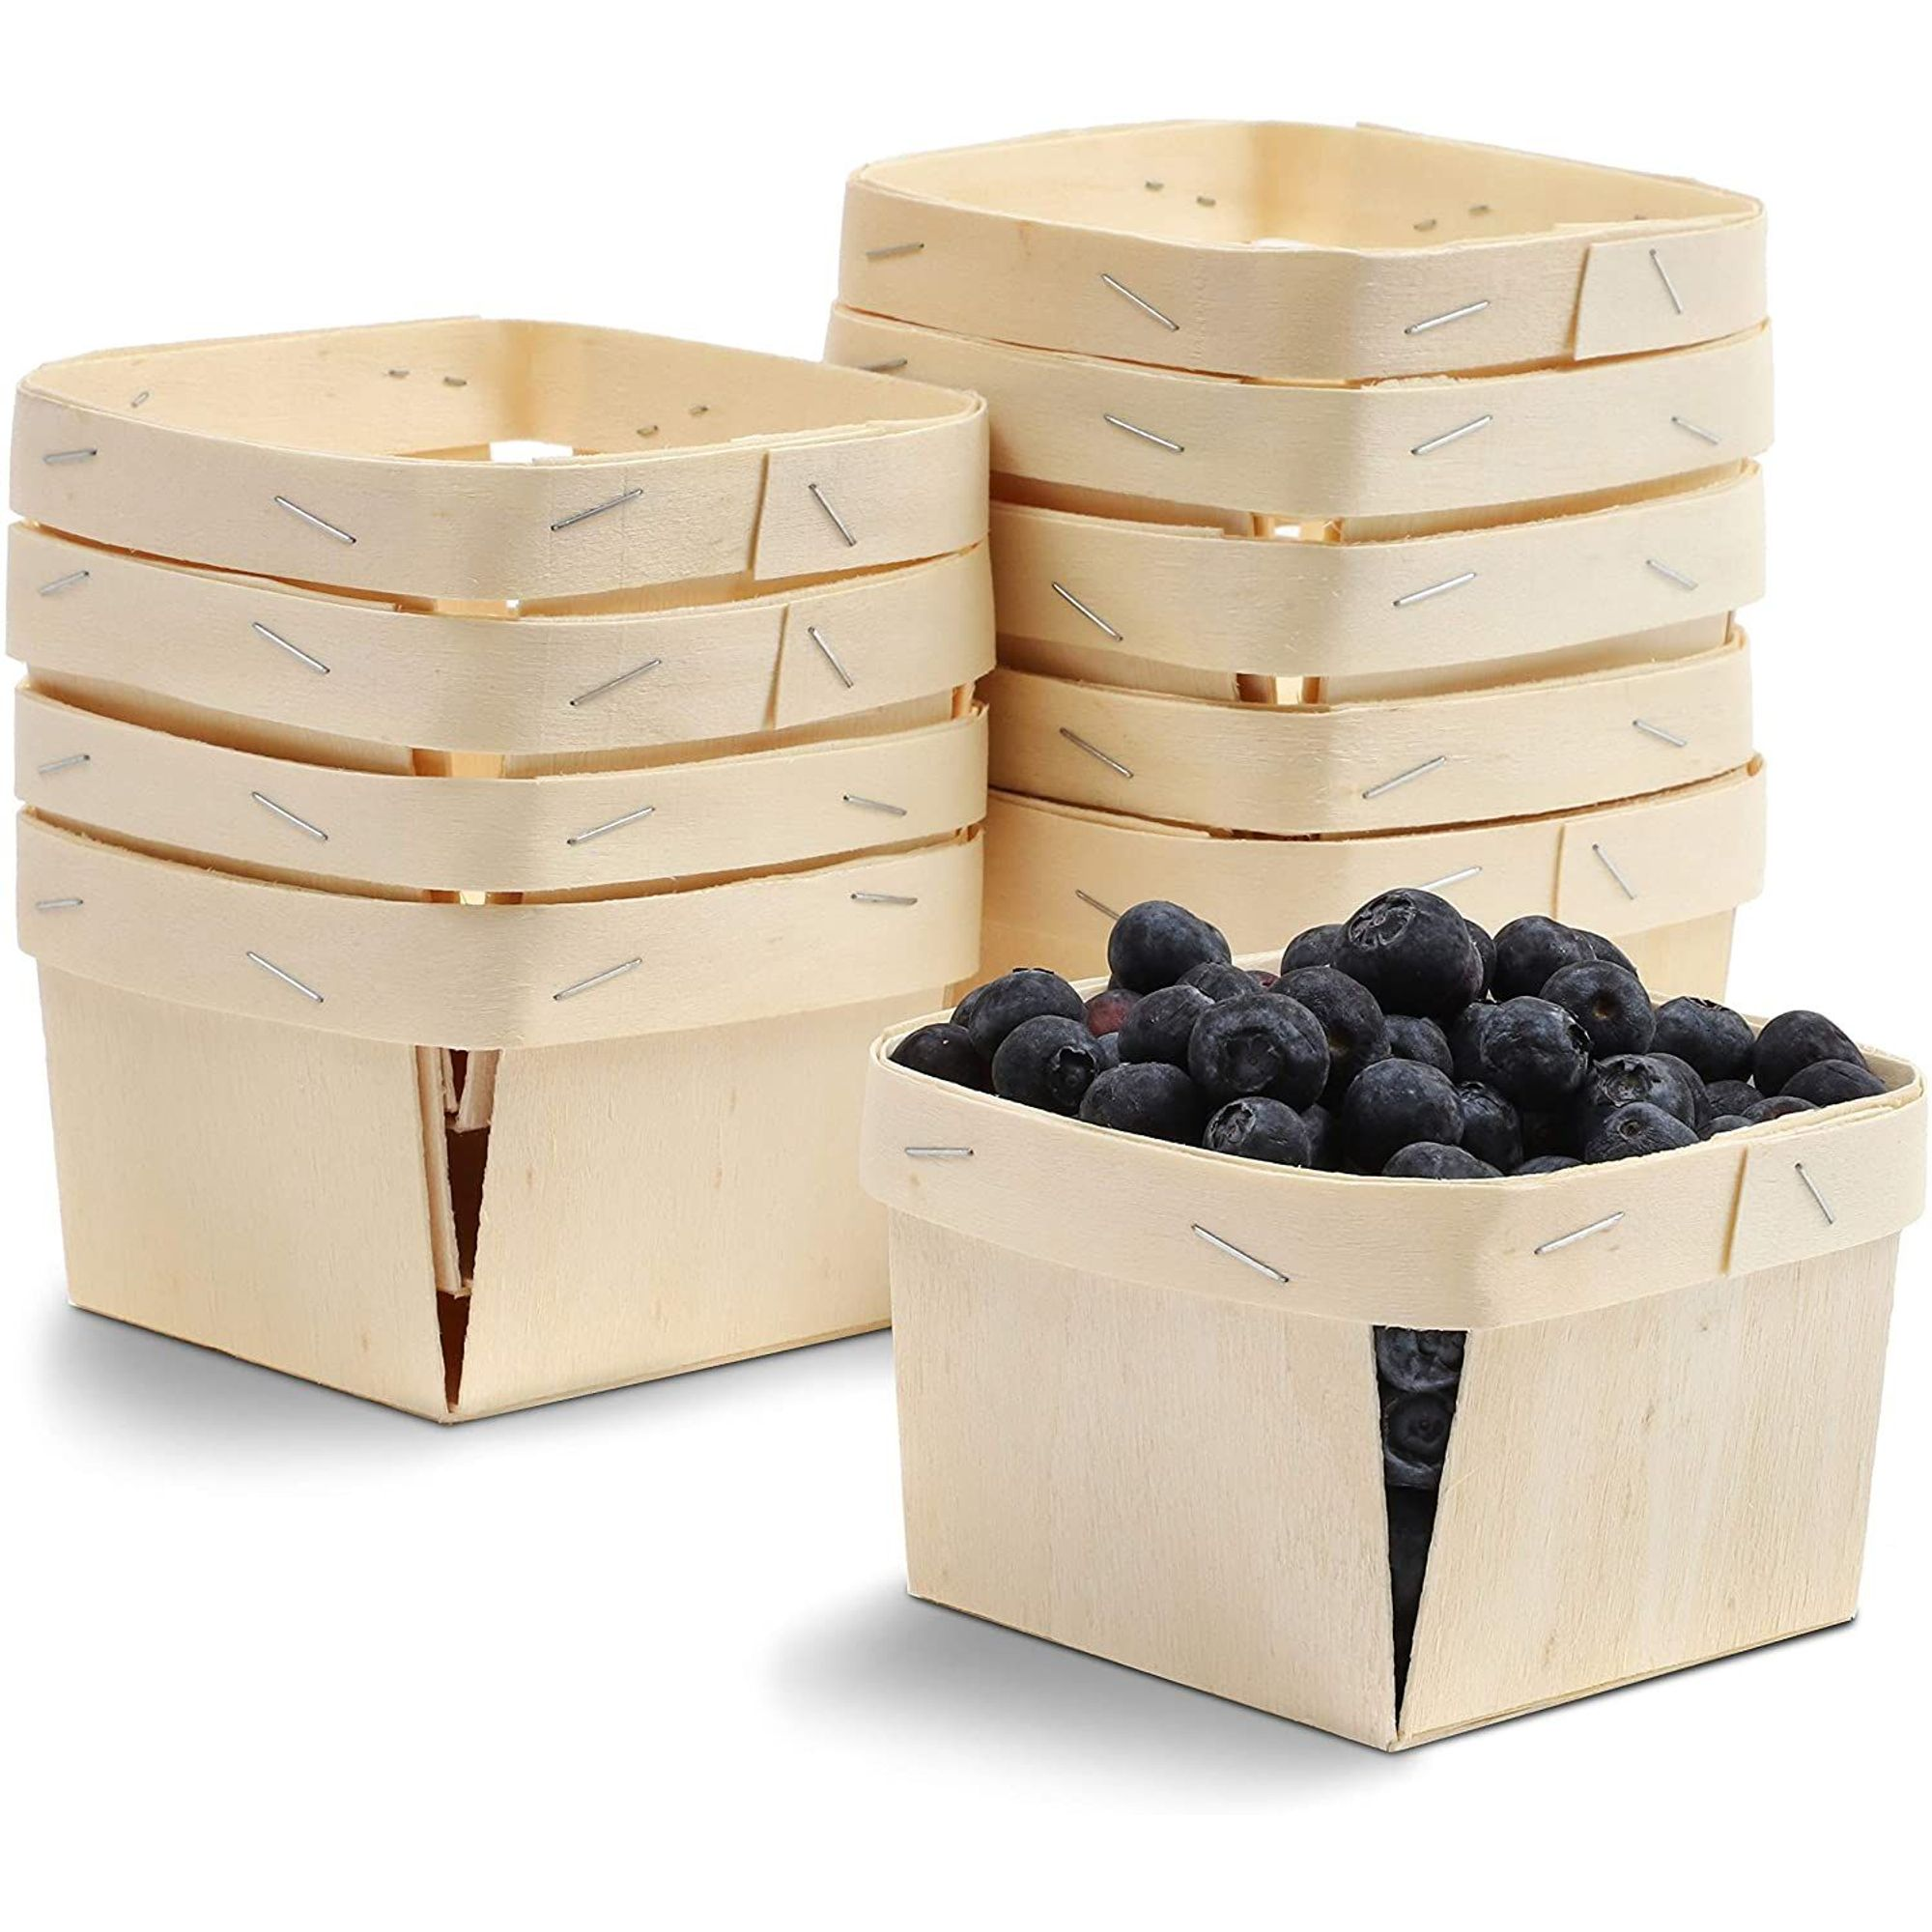 4 Inches, 10-Pack One Pint Wooden Berry Baskets